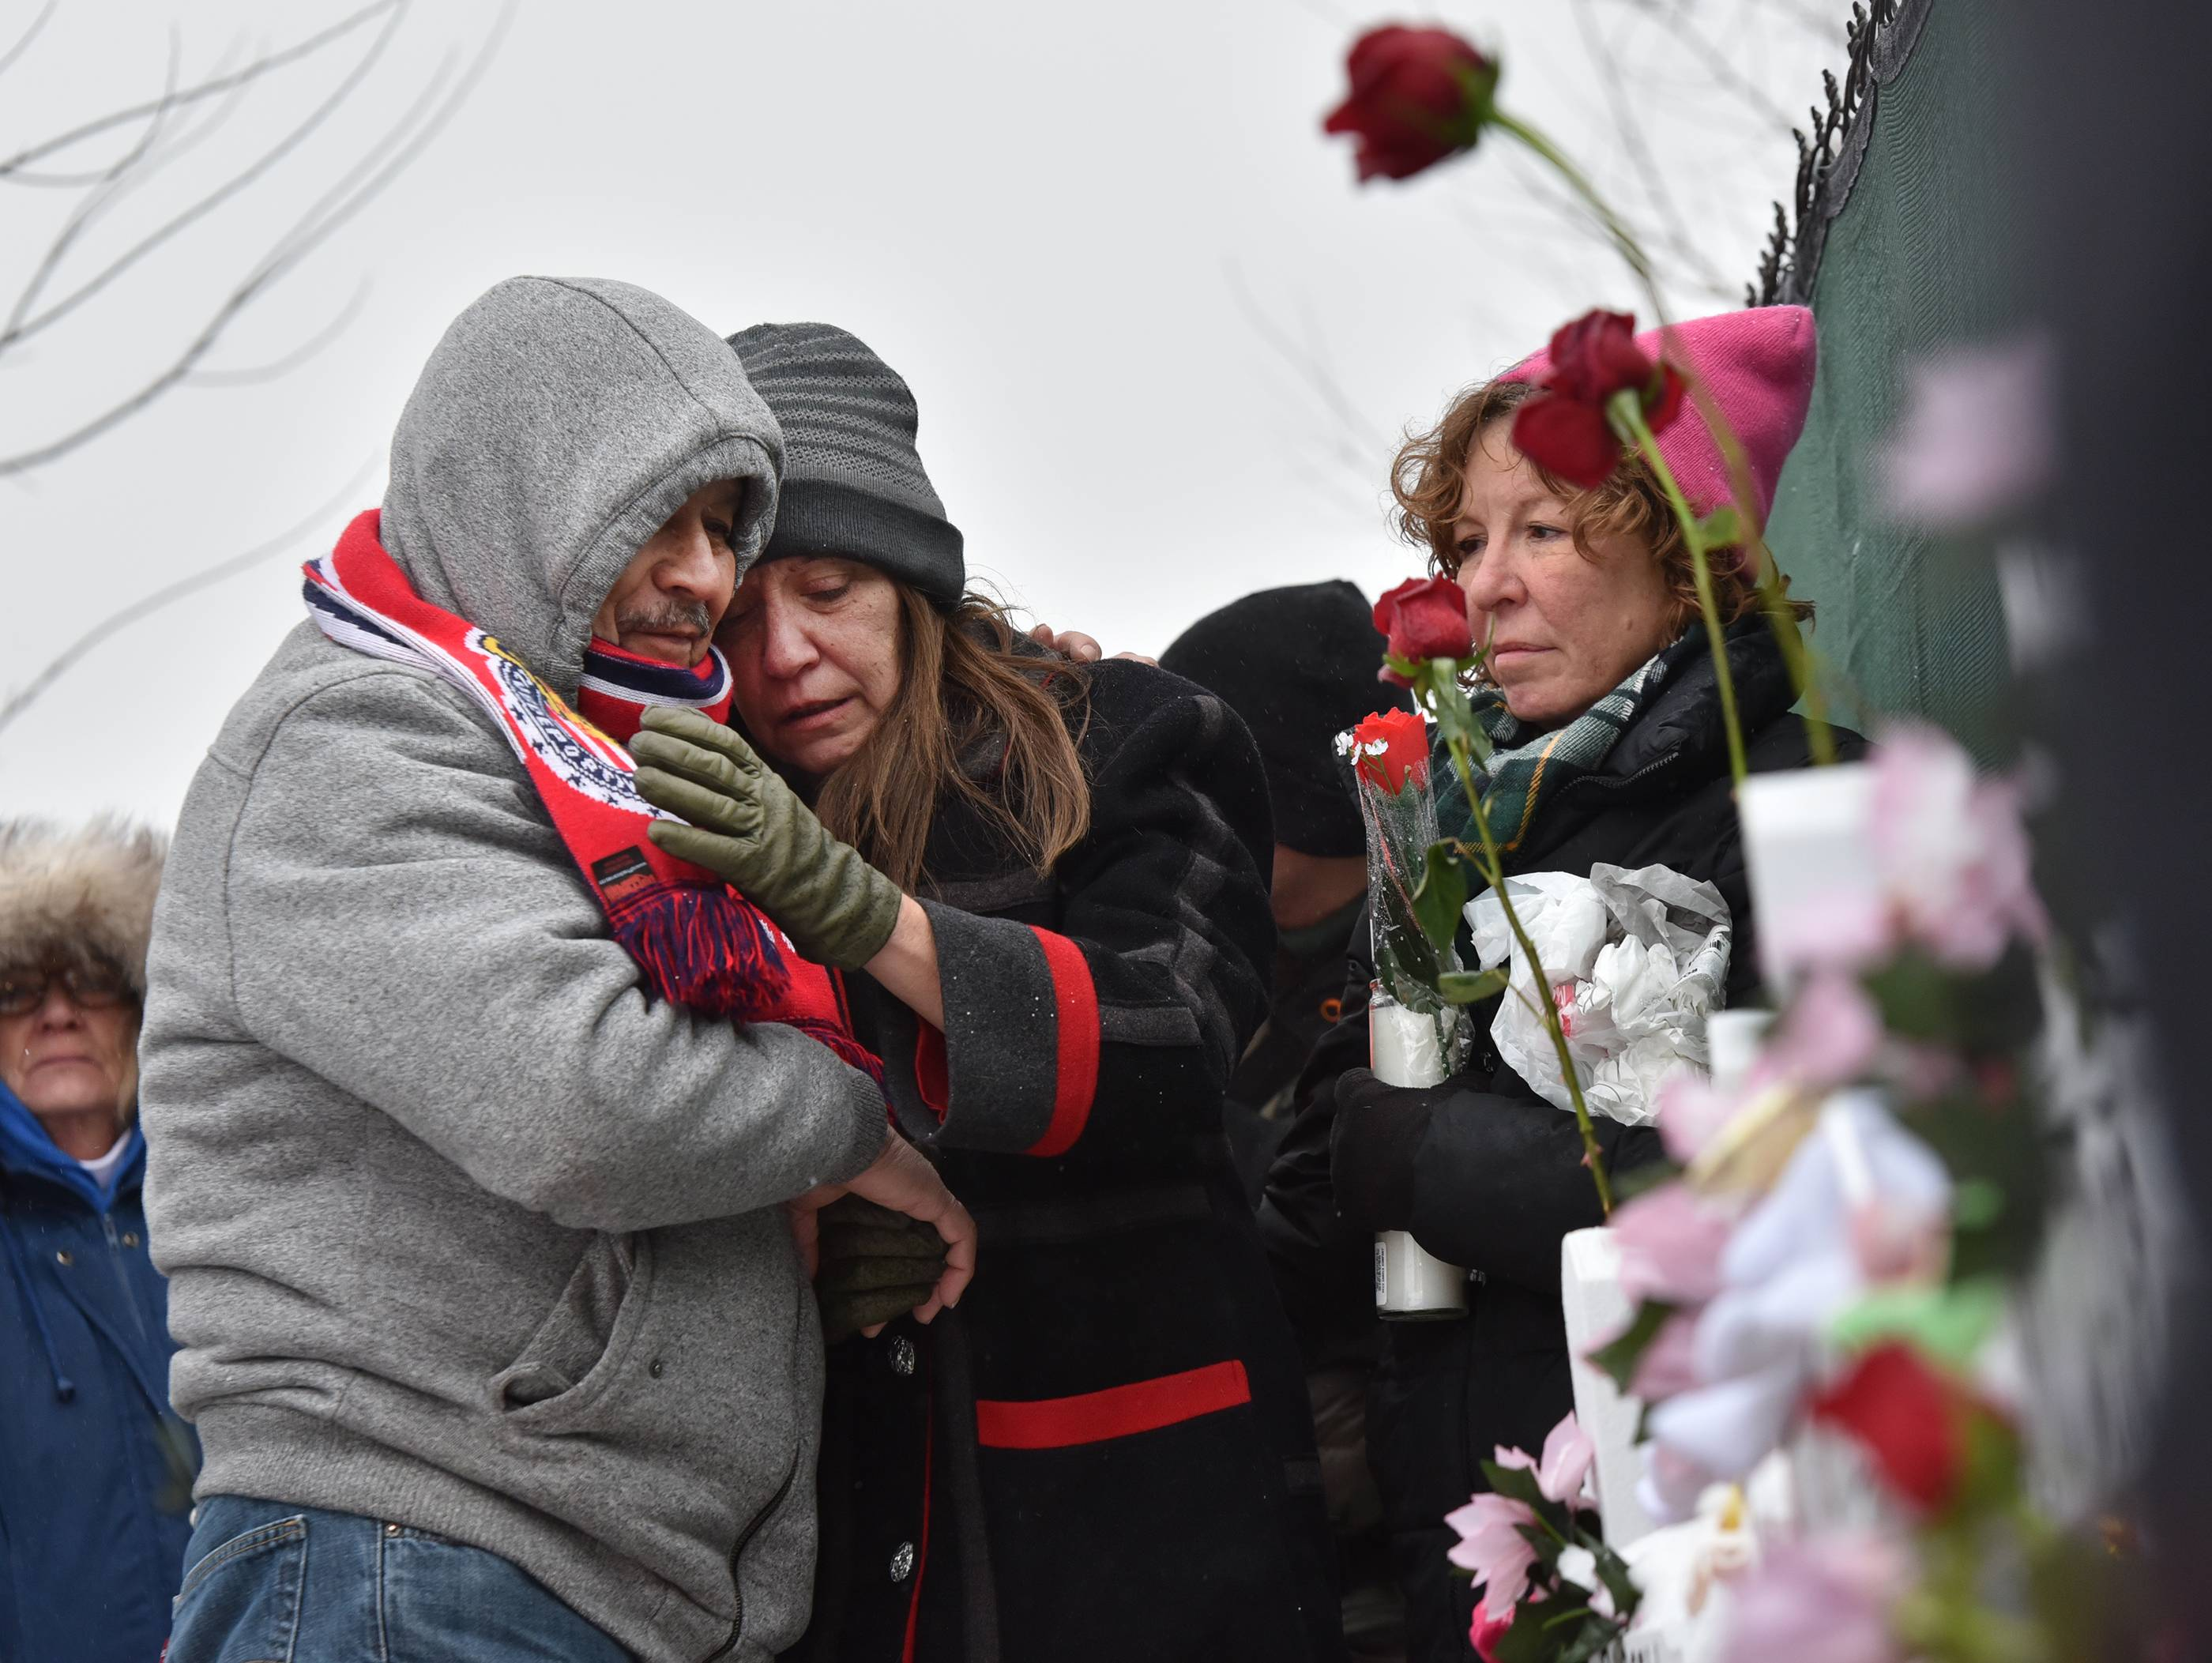 Jeff Knox/jknox@dailyherald.comMourners place a flower at the crosses outside of the Henry Pratt company in Aurora on Sunday, Feb. 17 in memory of the 5 employees killed on Friday.